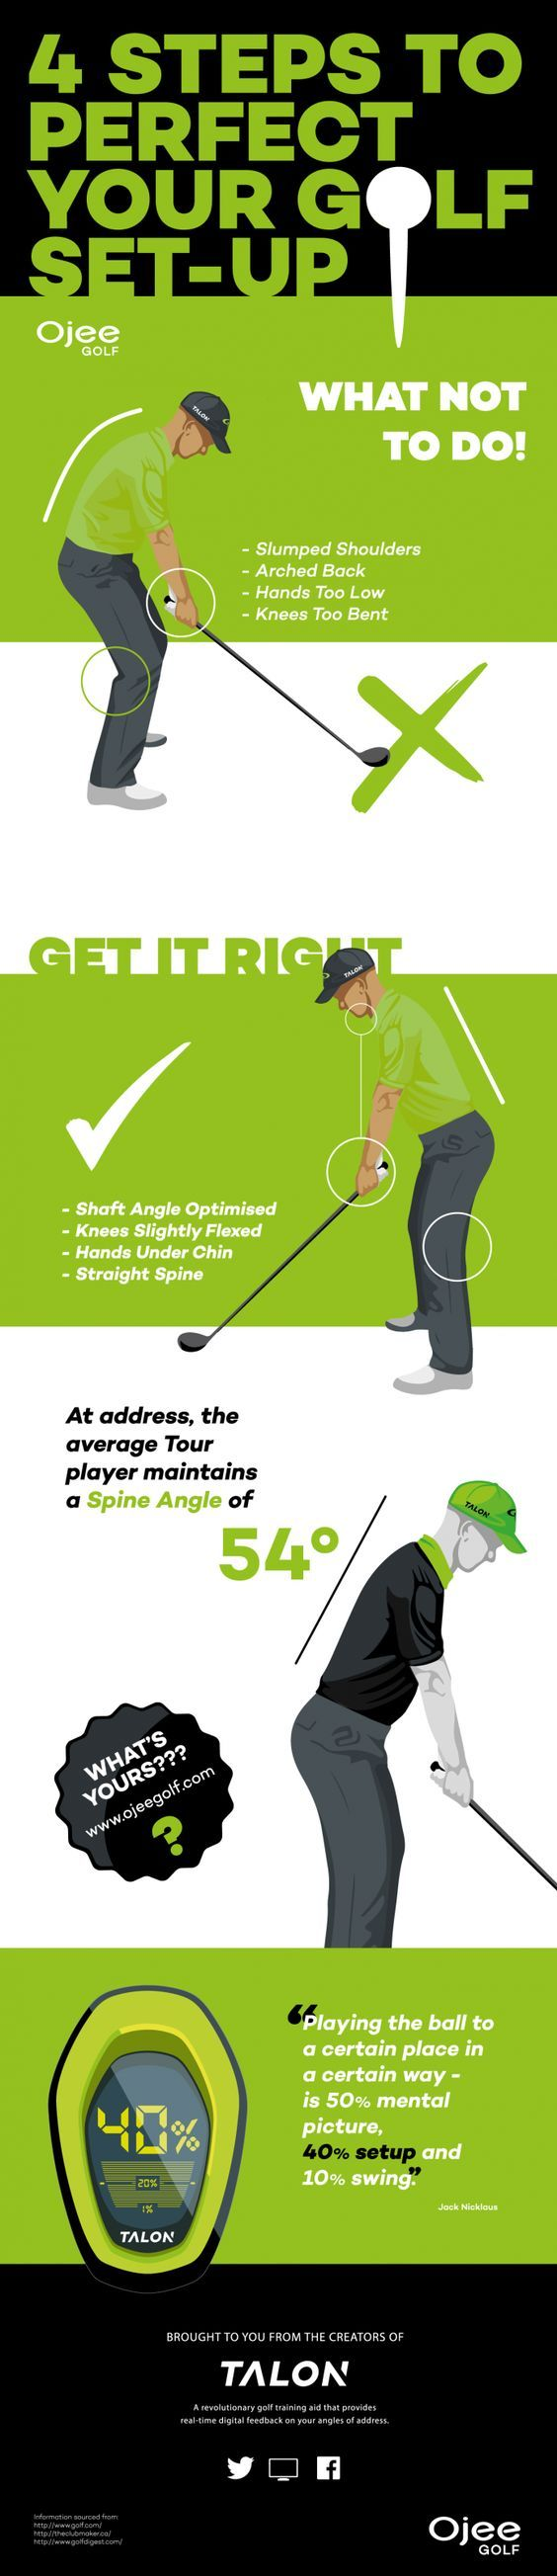 Steps how to perfect your golf setup | Find more golf ideas, quotes, and tips at #lorisgolfshoppe